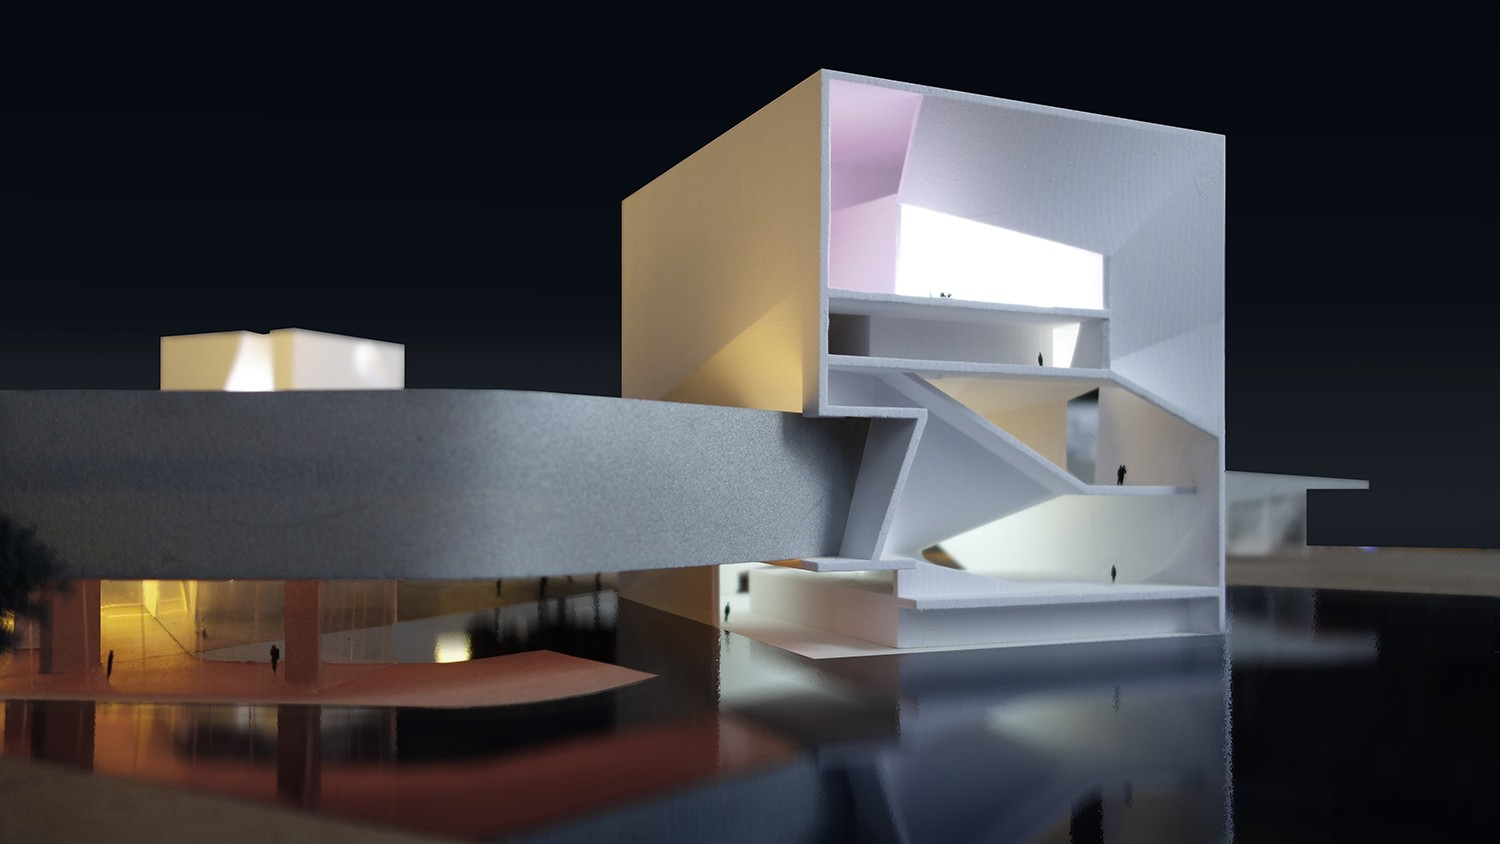 https://s3.us-east-2.amazonaws.com/steven-holl/uploads/projects/project-images/StevenHollArchitects_Qingdao_1_s_touched_WH.jpg